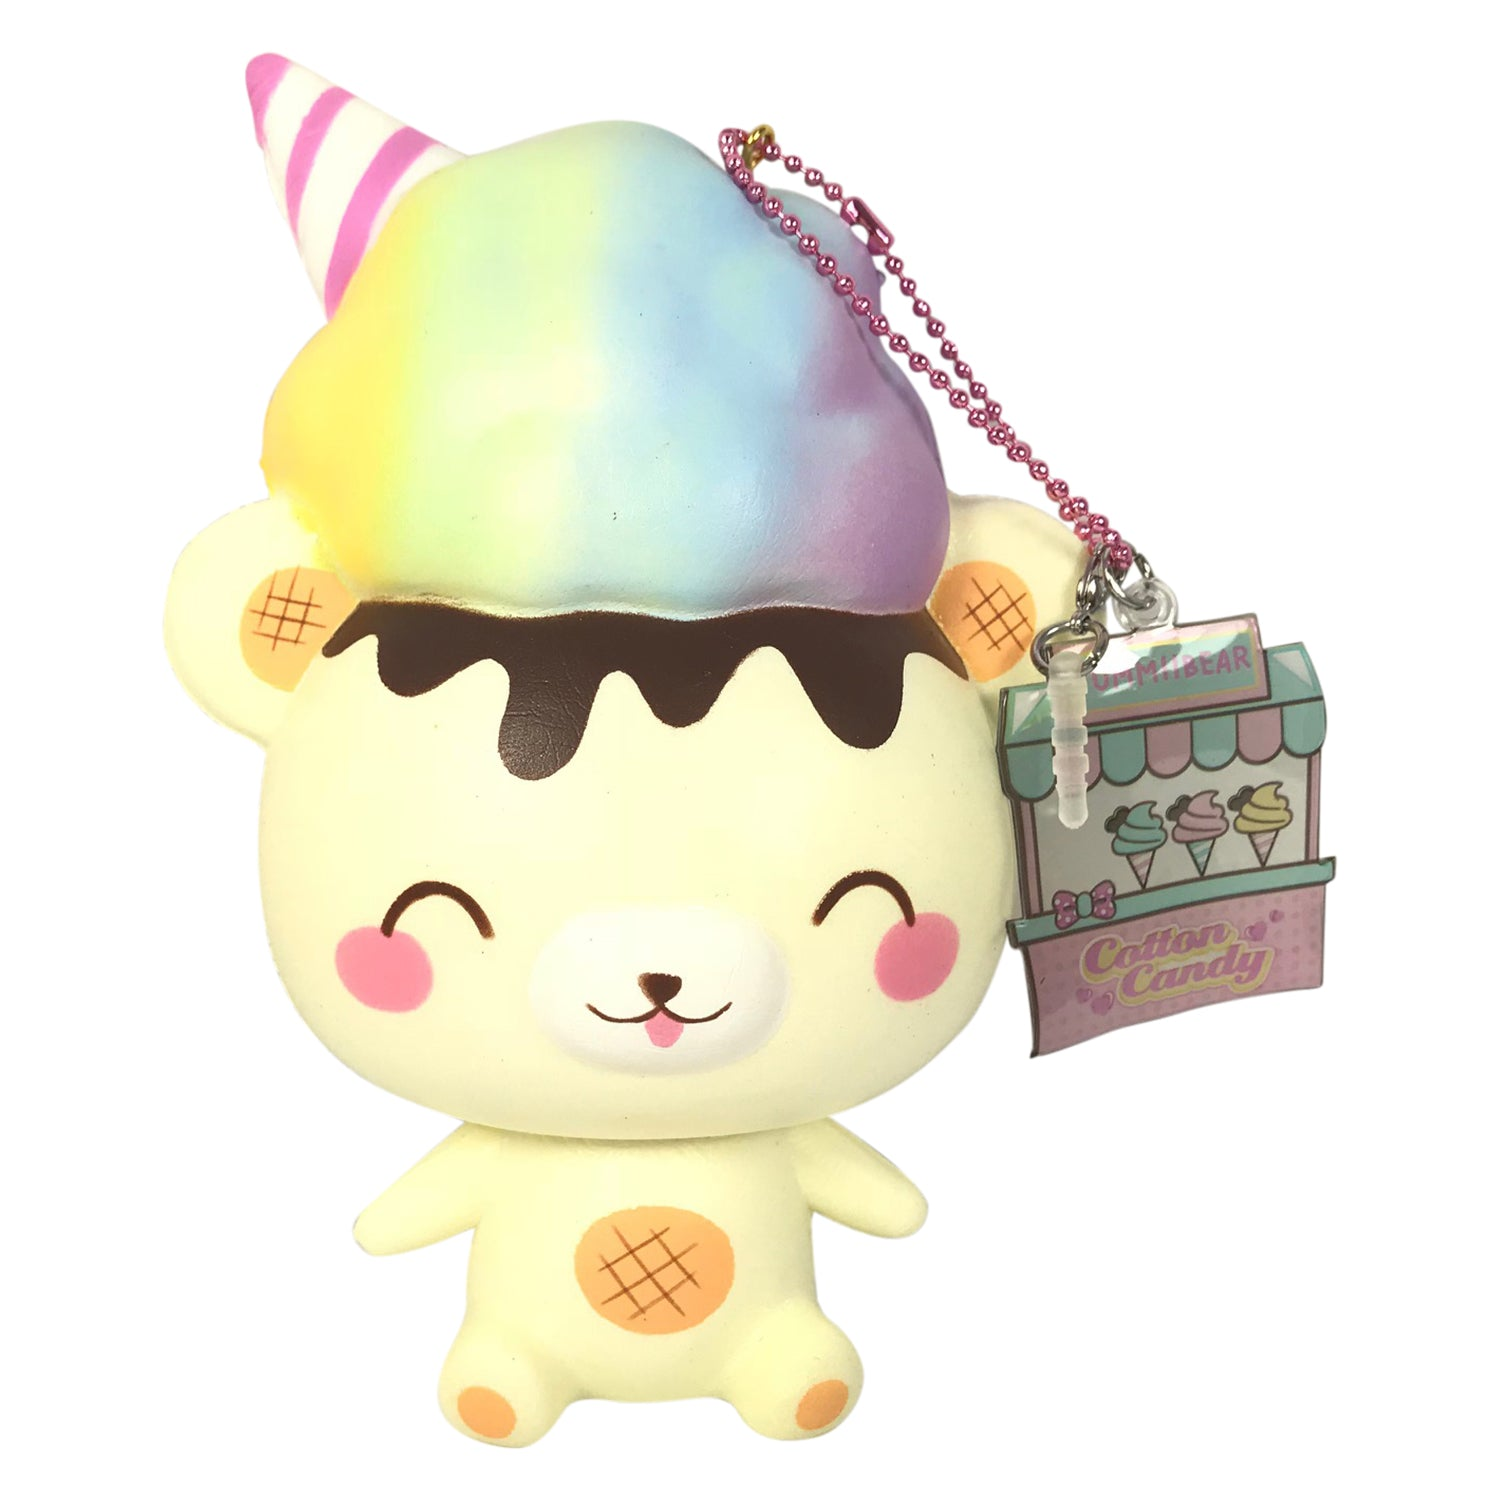 Squishy Yummiibear : Rare, LIMITED Fairy Floss Cotton Candy SCENTED YUMMIIBEAR Squishy! Jenna Lyn Squishies and ...